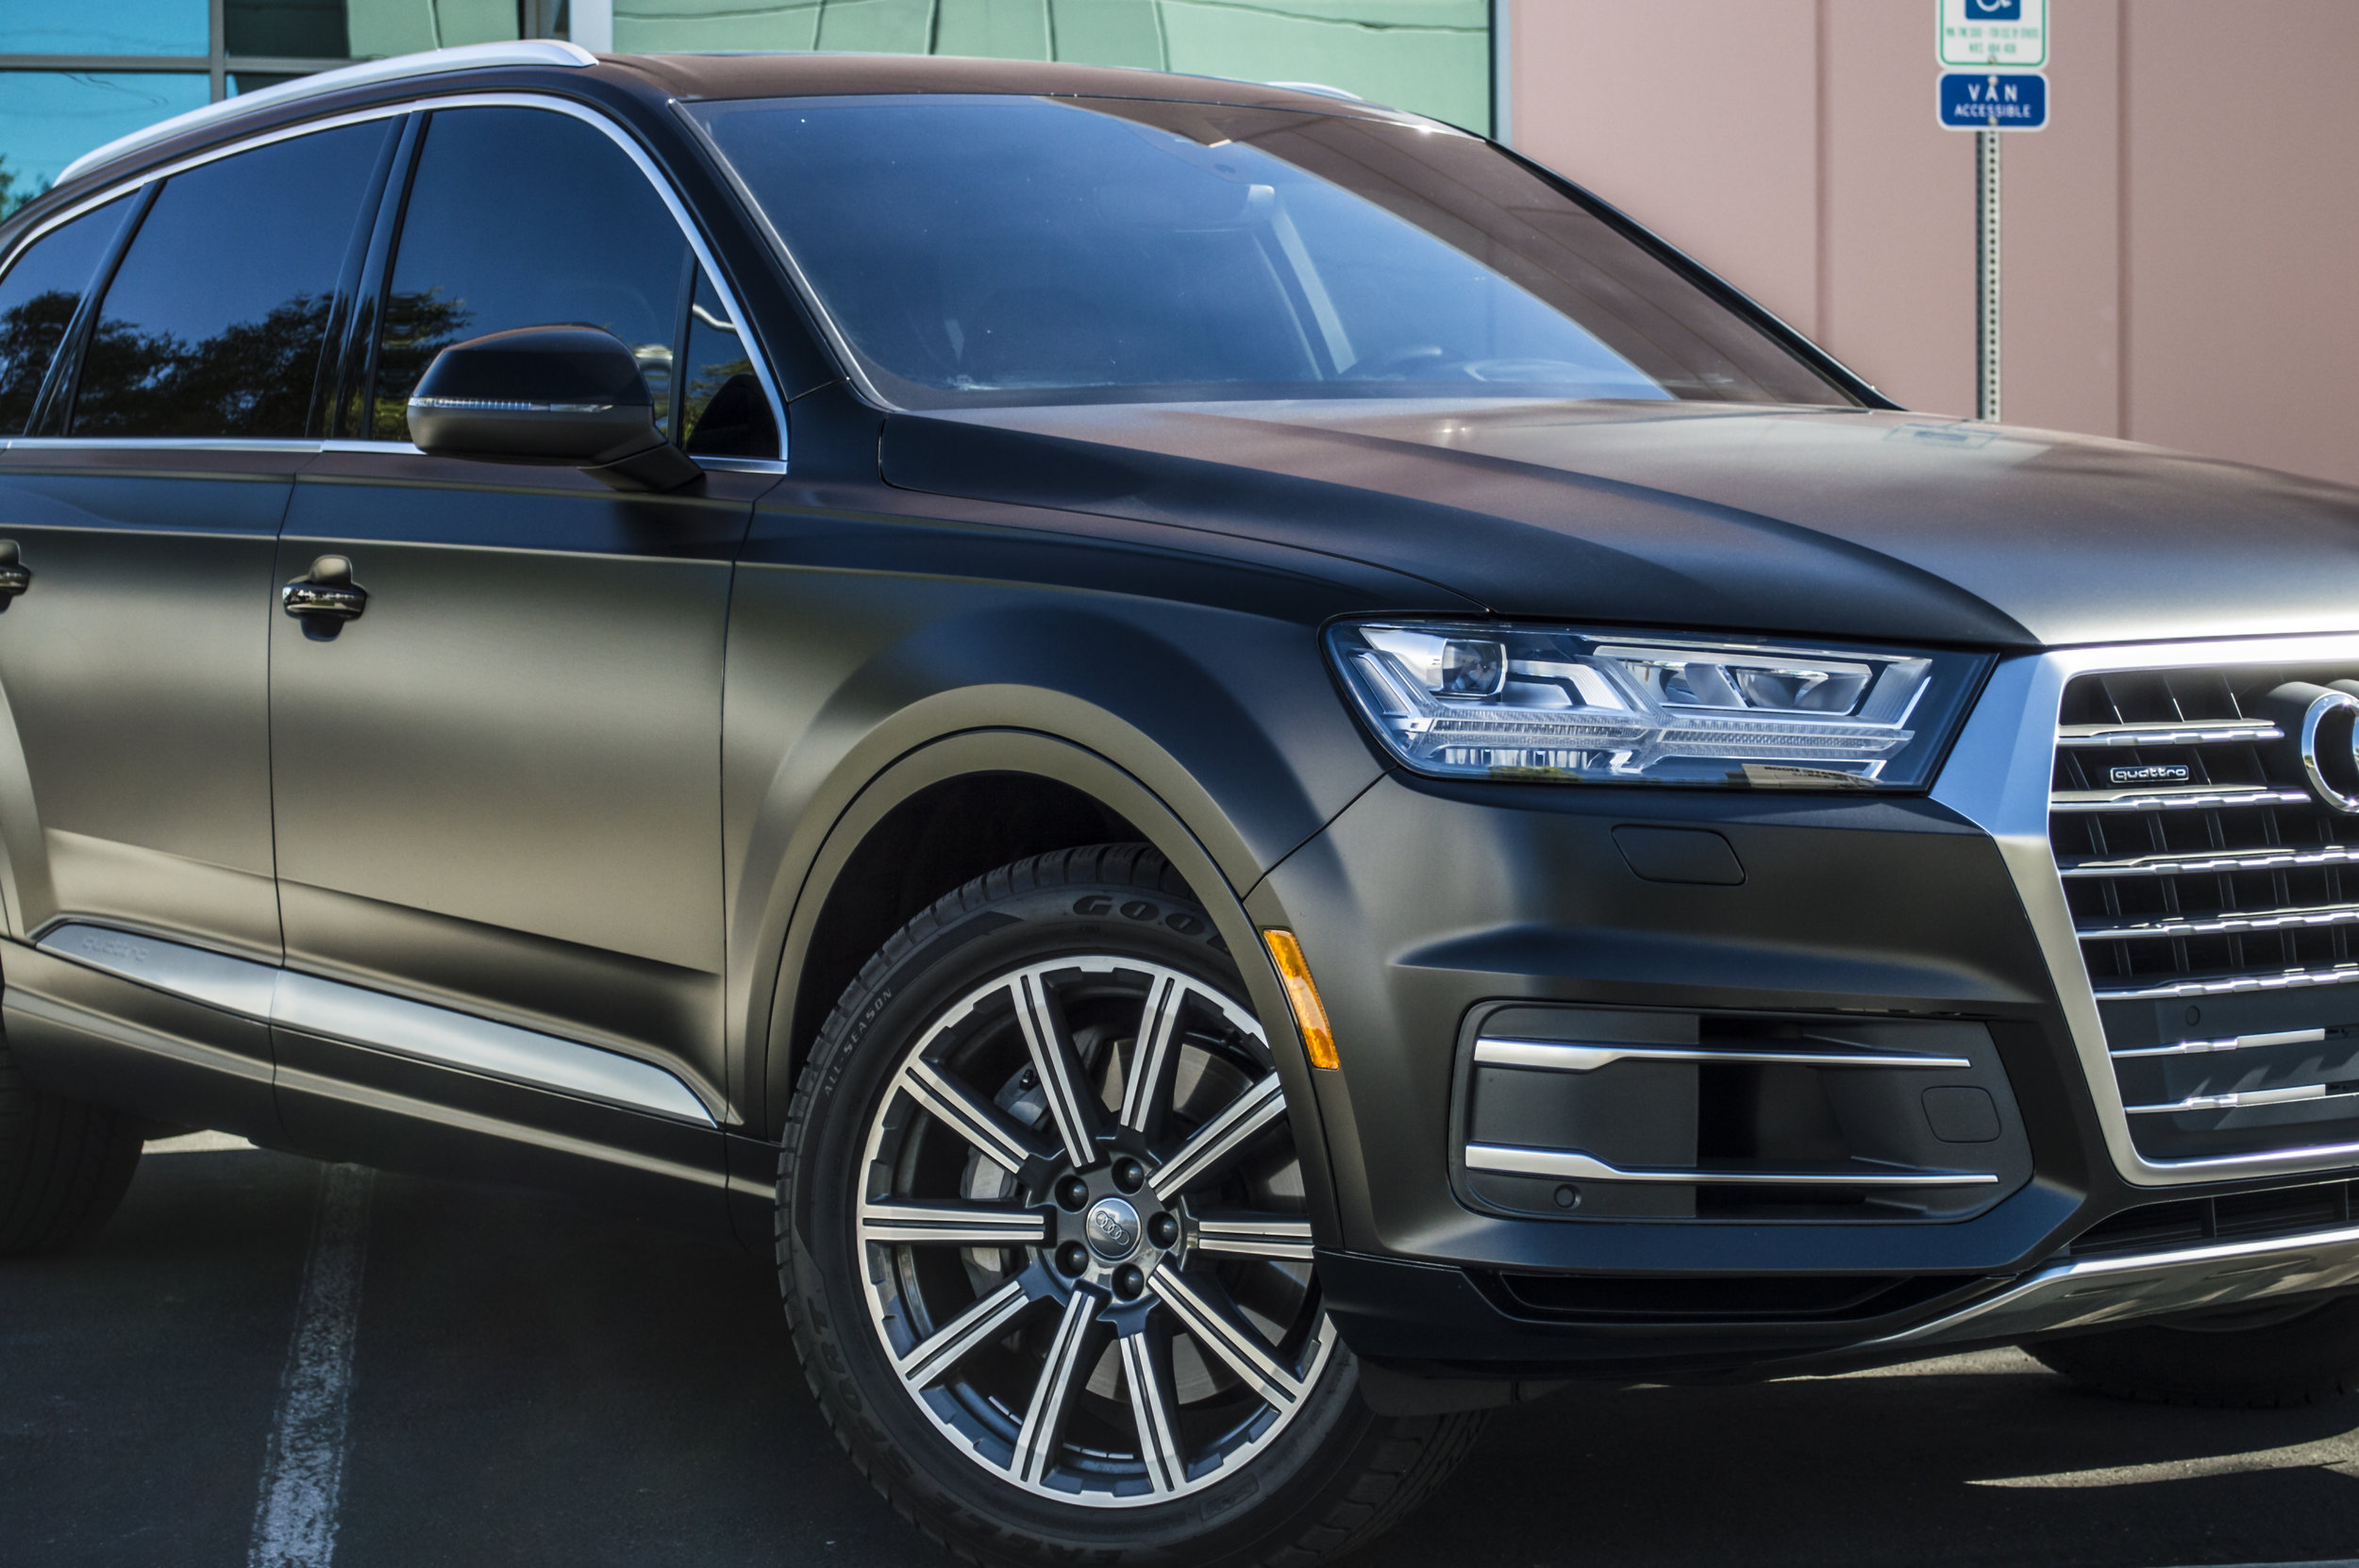 Audi Q7 - Stealth Paint Protection Film — Incognito Wraps